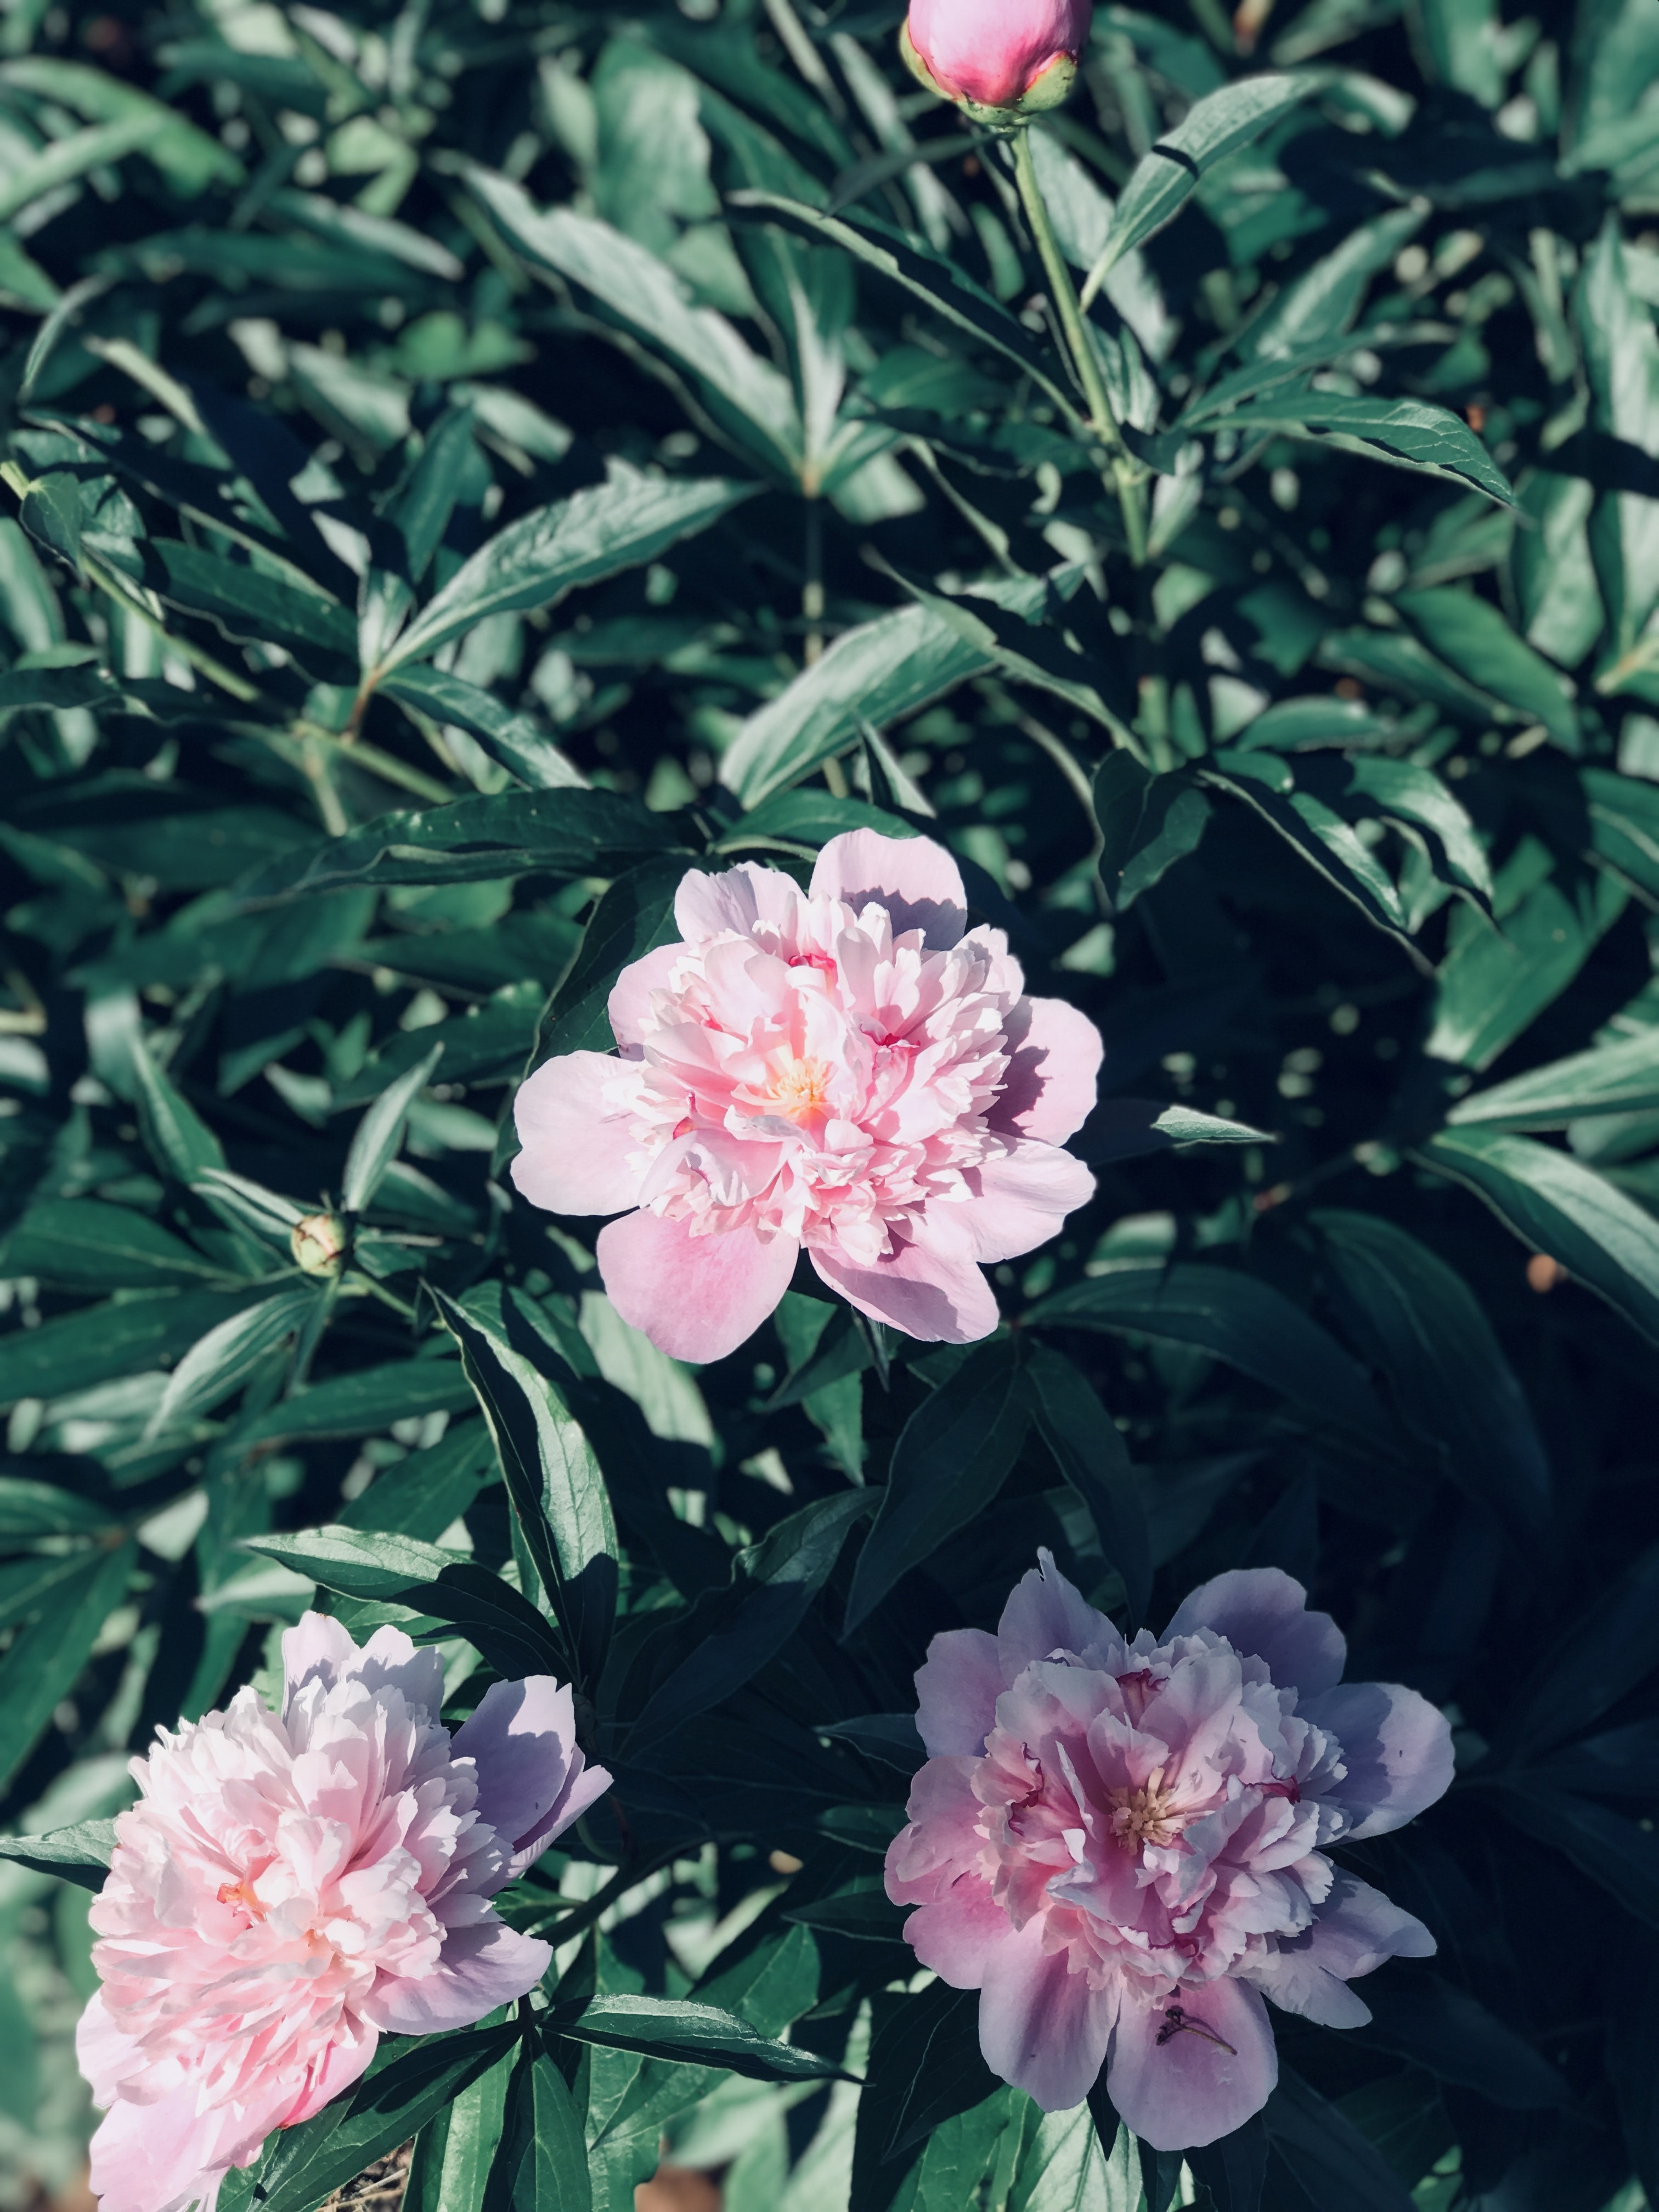 green leafed plant with pink petal flowers